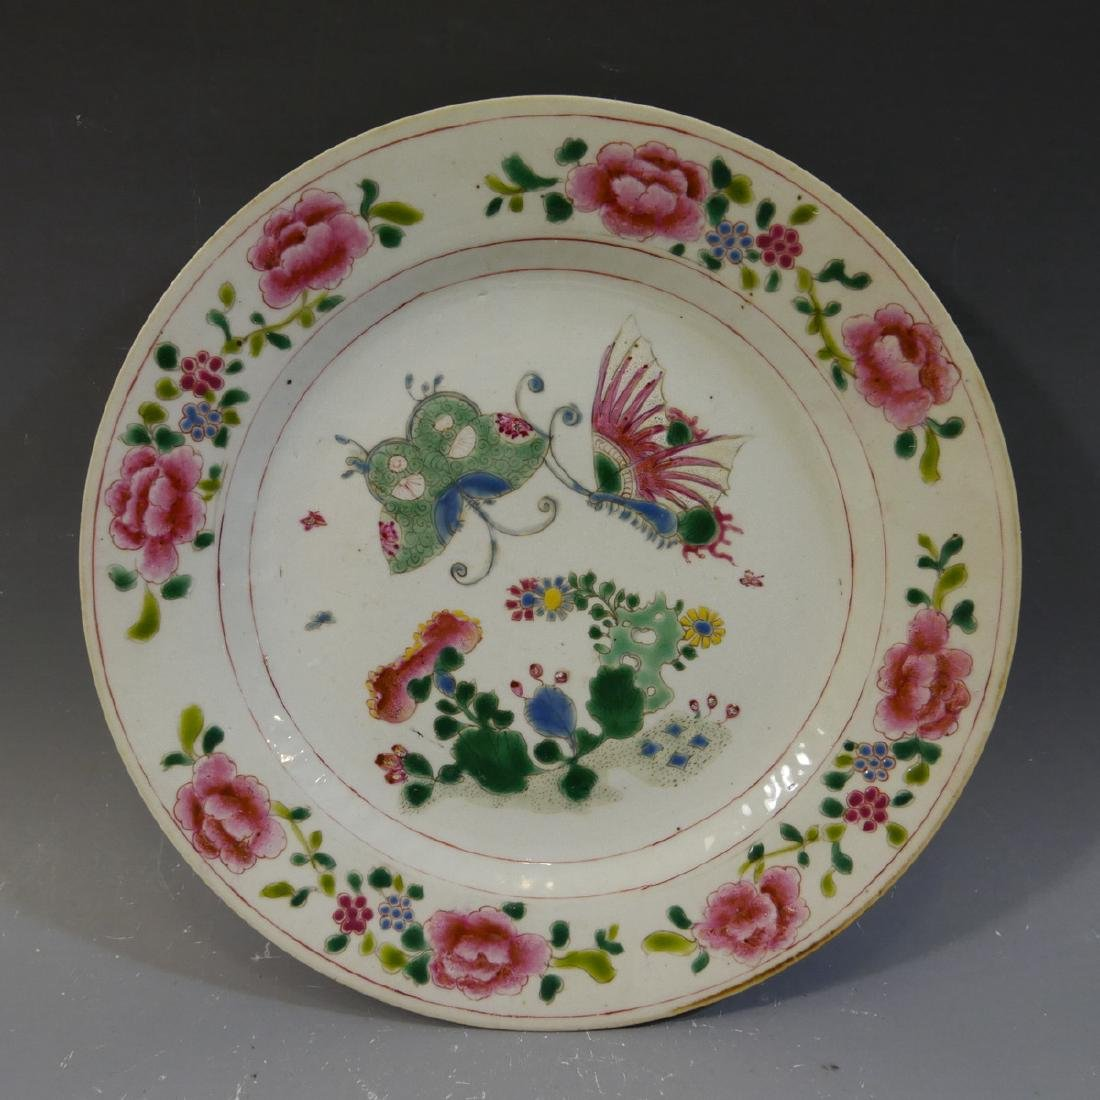 ANTIQUE CHINESE FAMILLE ROSE PORCELAIN PLATE - 18TH